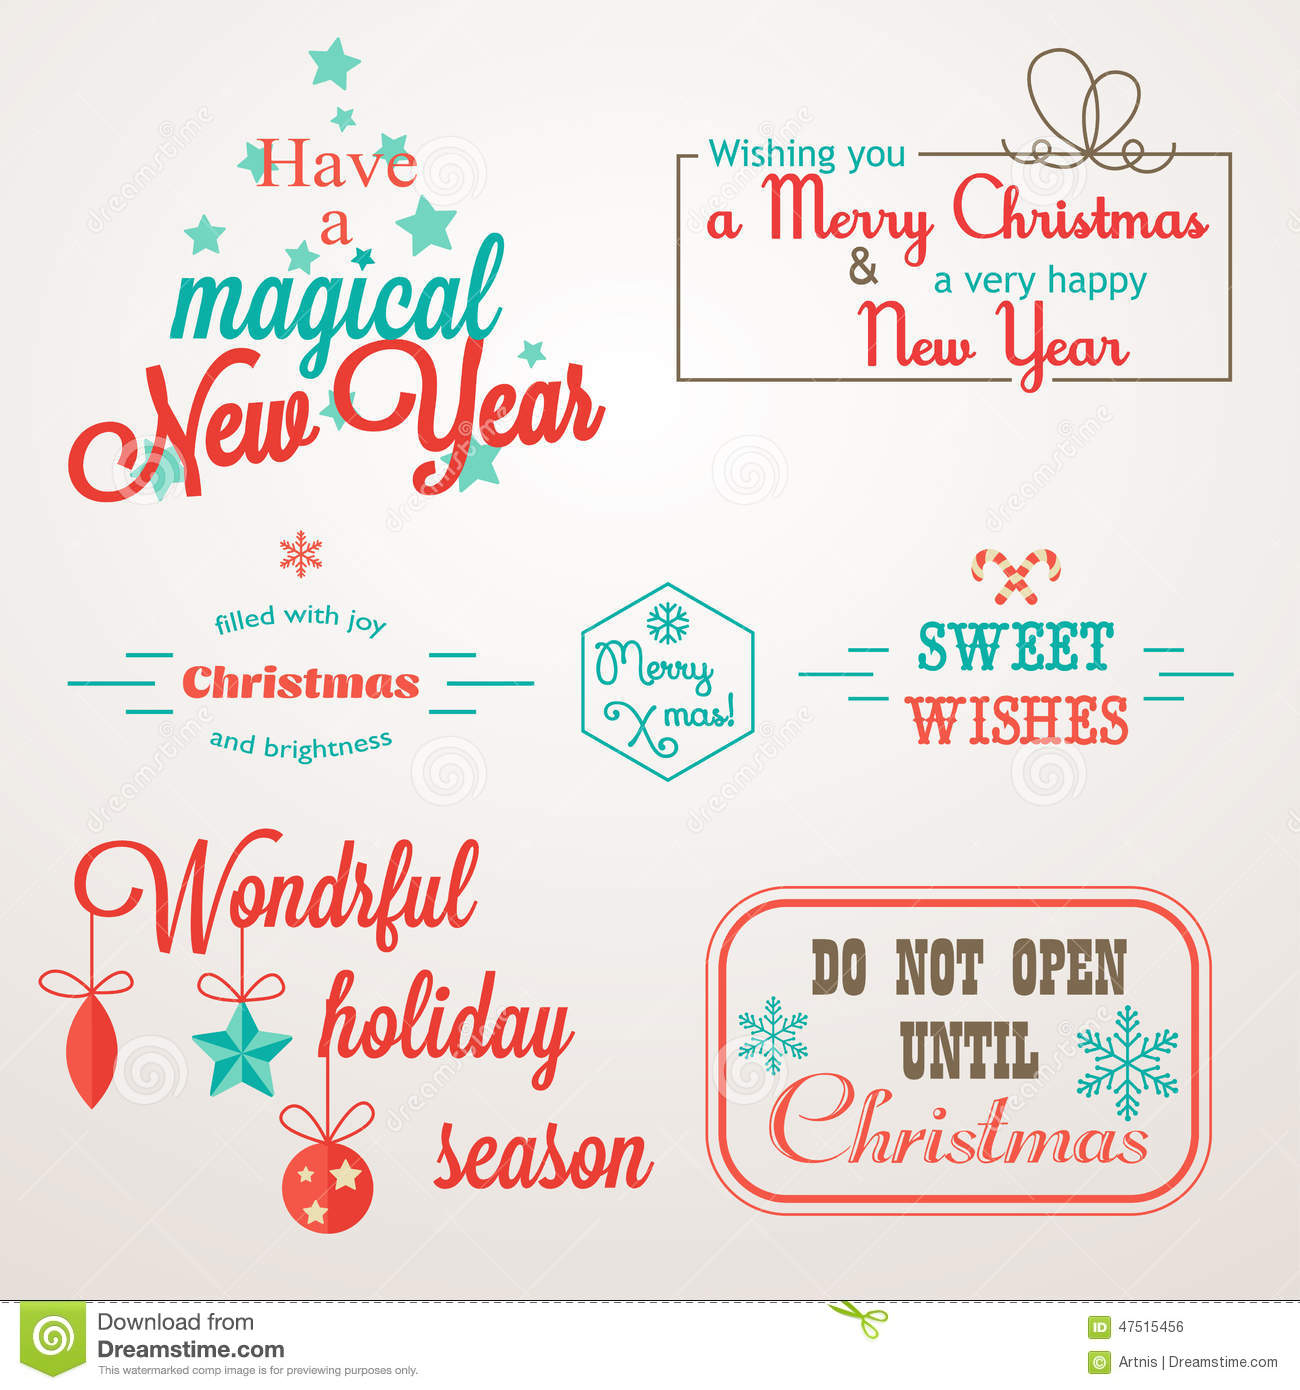 New year greetings and phrases new yearfo 2019 new year greetings and phrases m4hsunfo